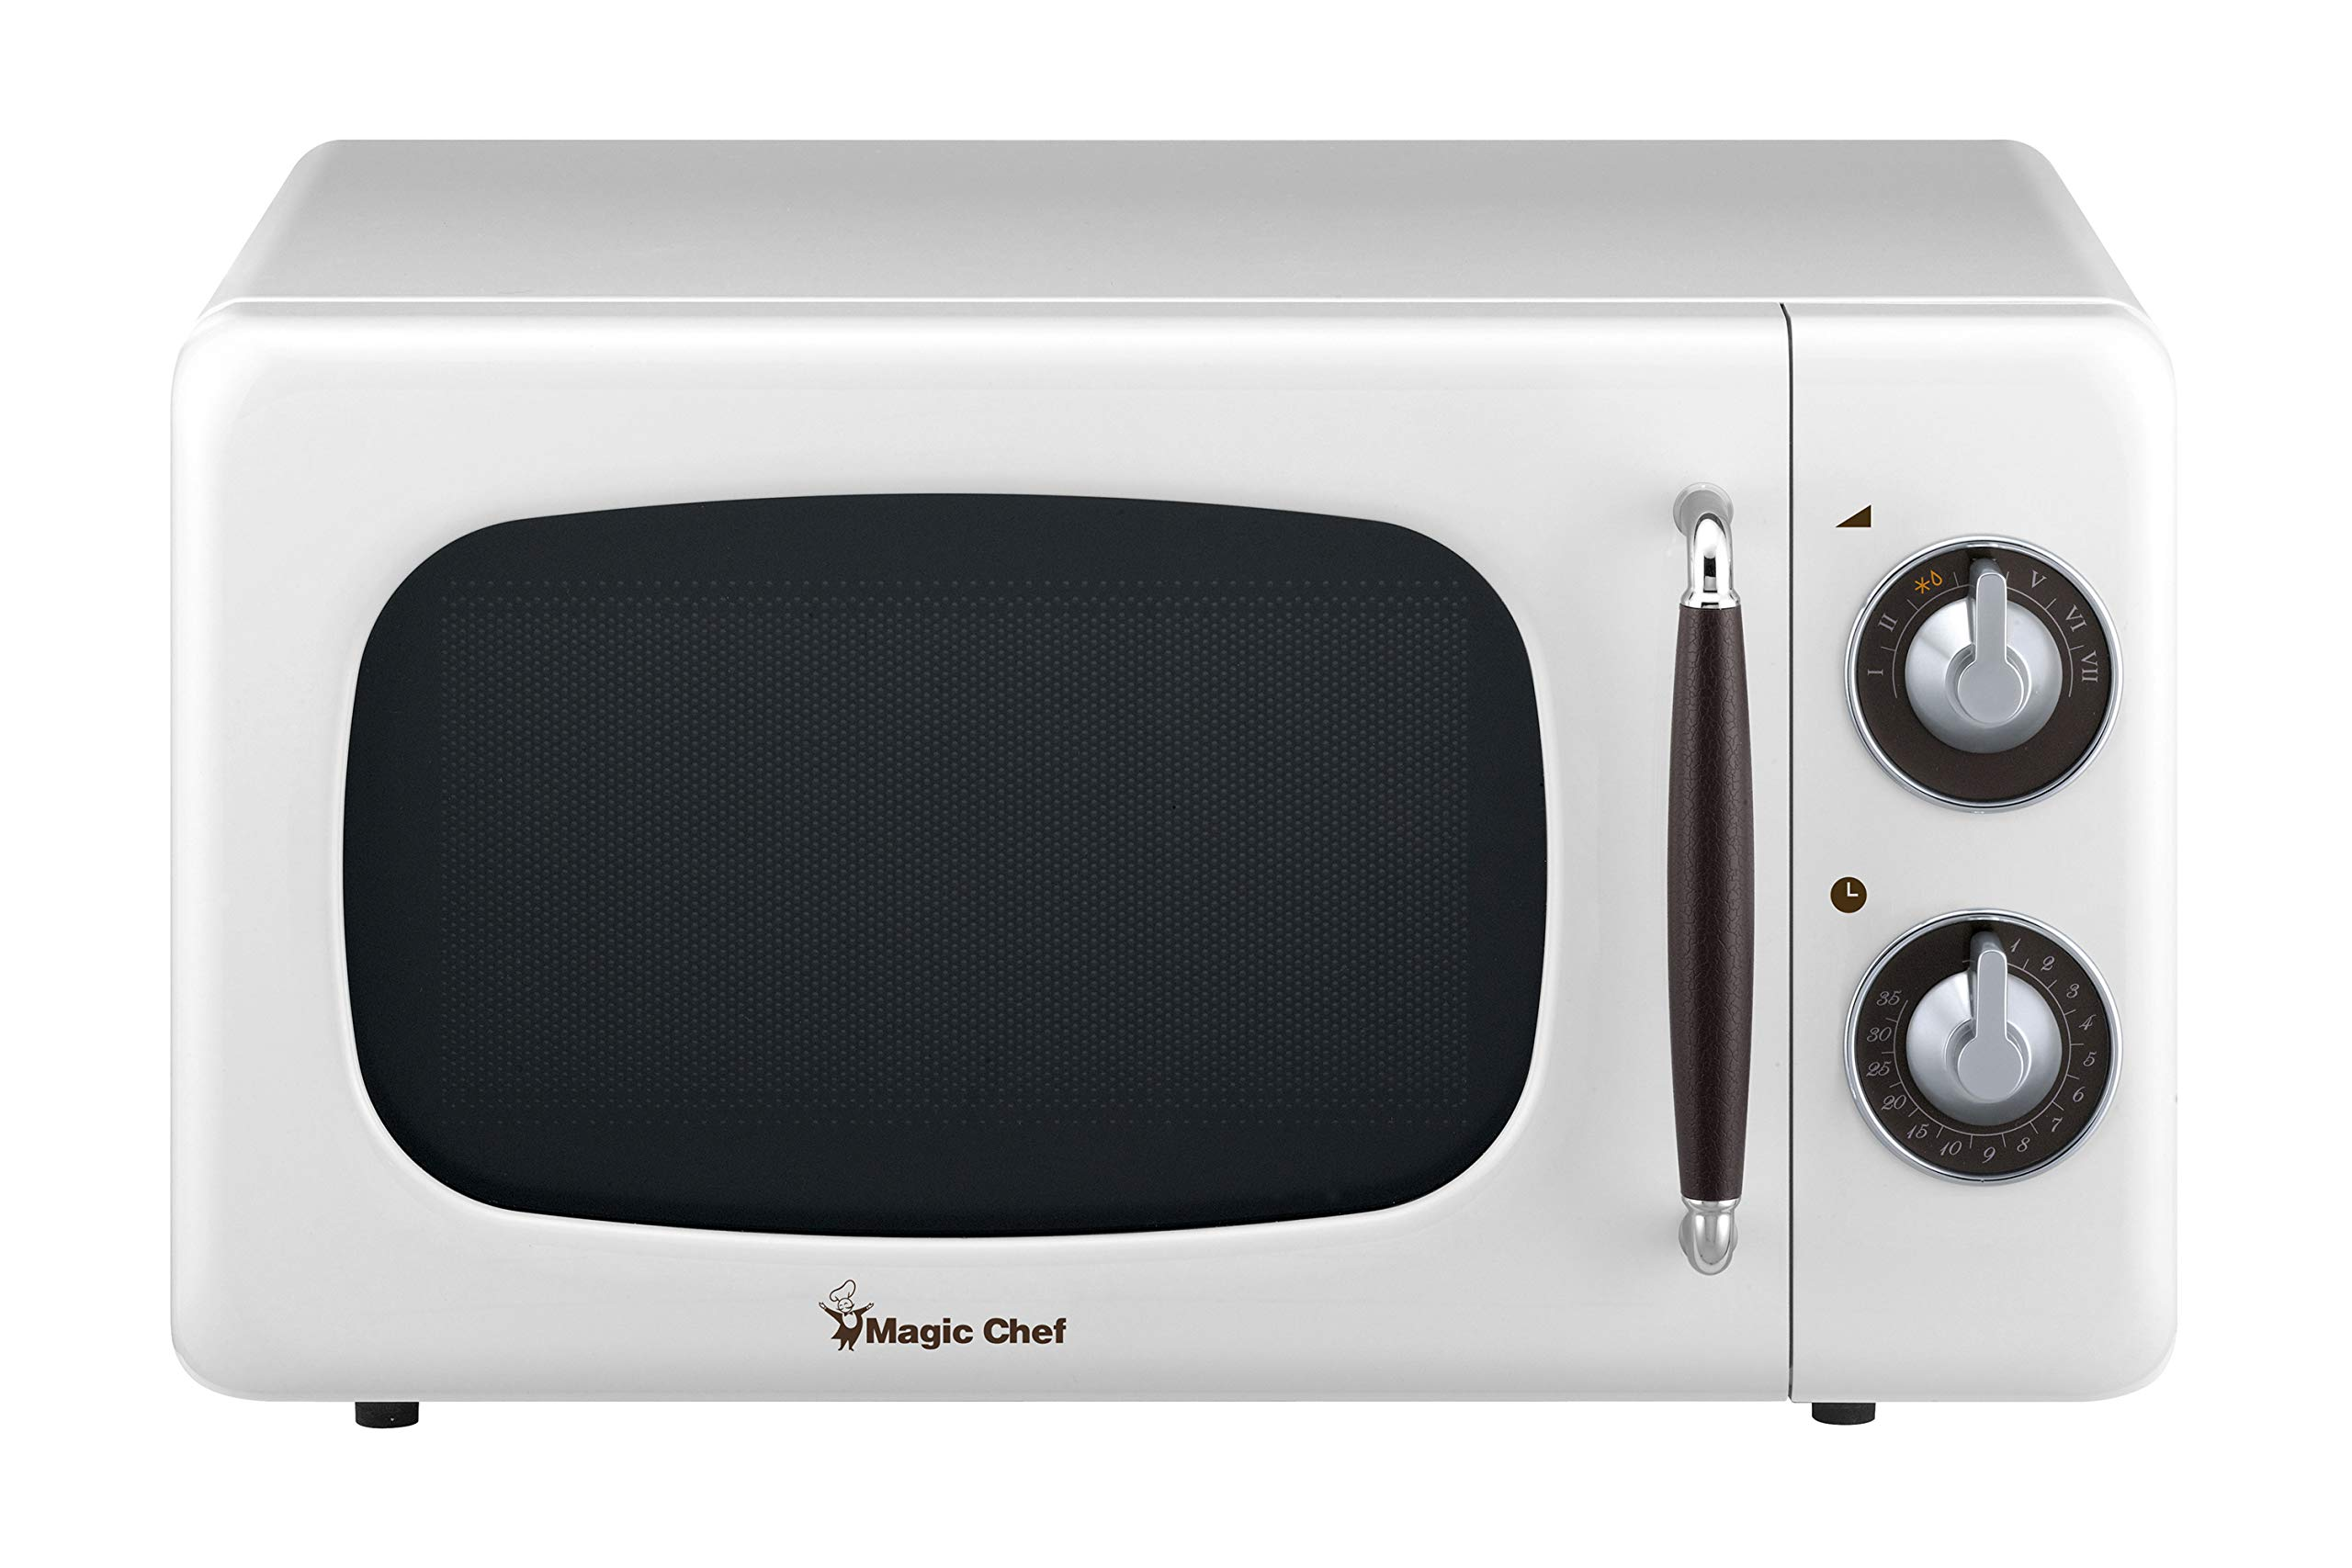 Magic Chef MCD770CW White 0.7-Cu. Ft. 700W Retro Countertop Microwave Oven, 7 Cu.Ft by Magic Chef